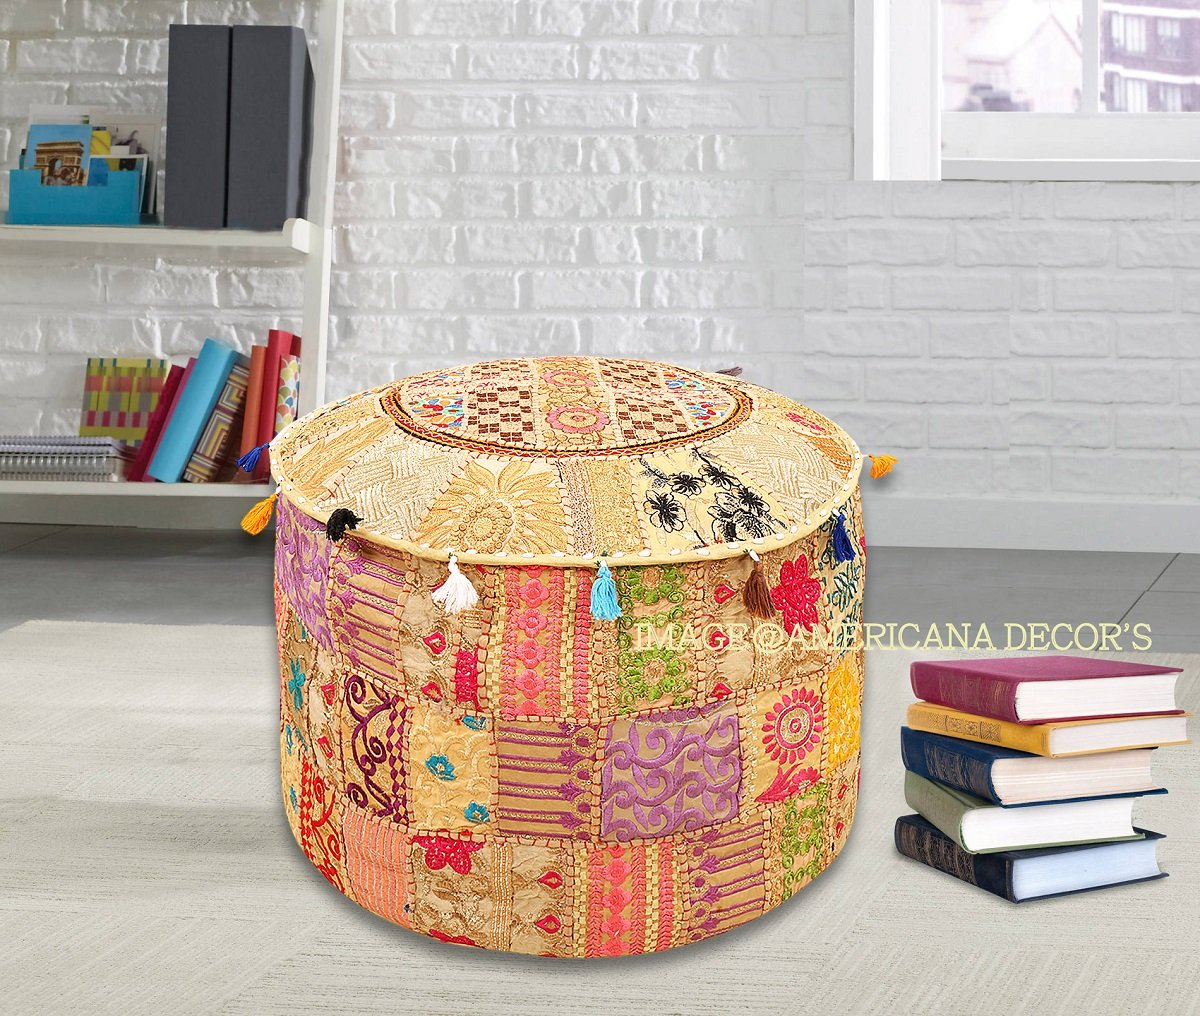 Americana decor's Bohemian Patchwork Ottoman Cover vintage Traditional indian pouf cover ''14x22'' cotton decorative chair ''Filler Not Inculded'' (Beige)